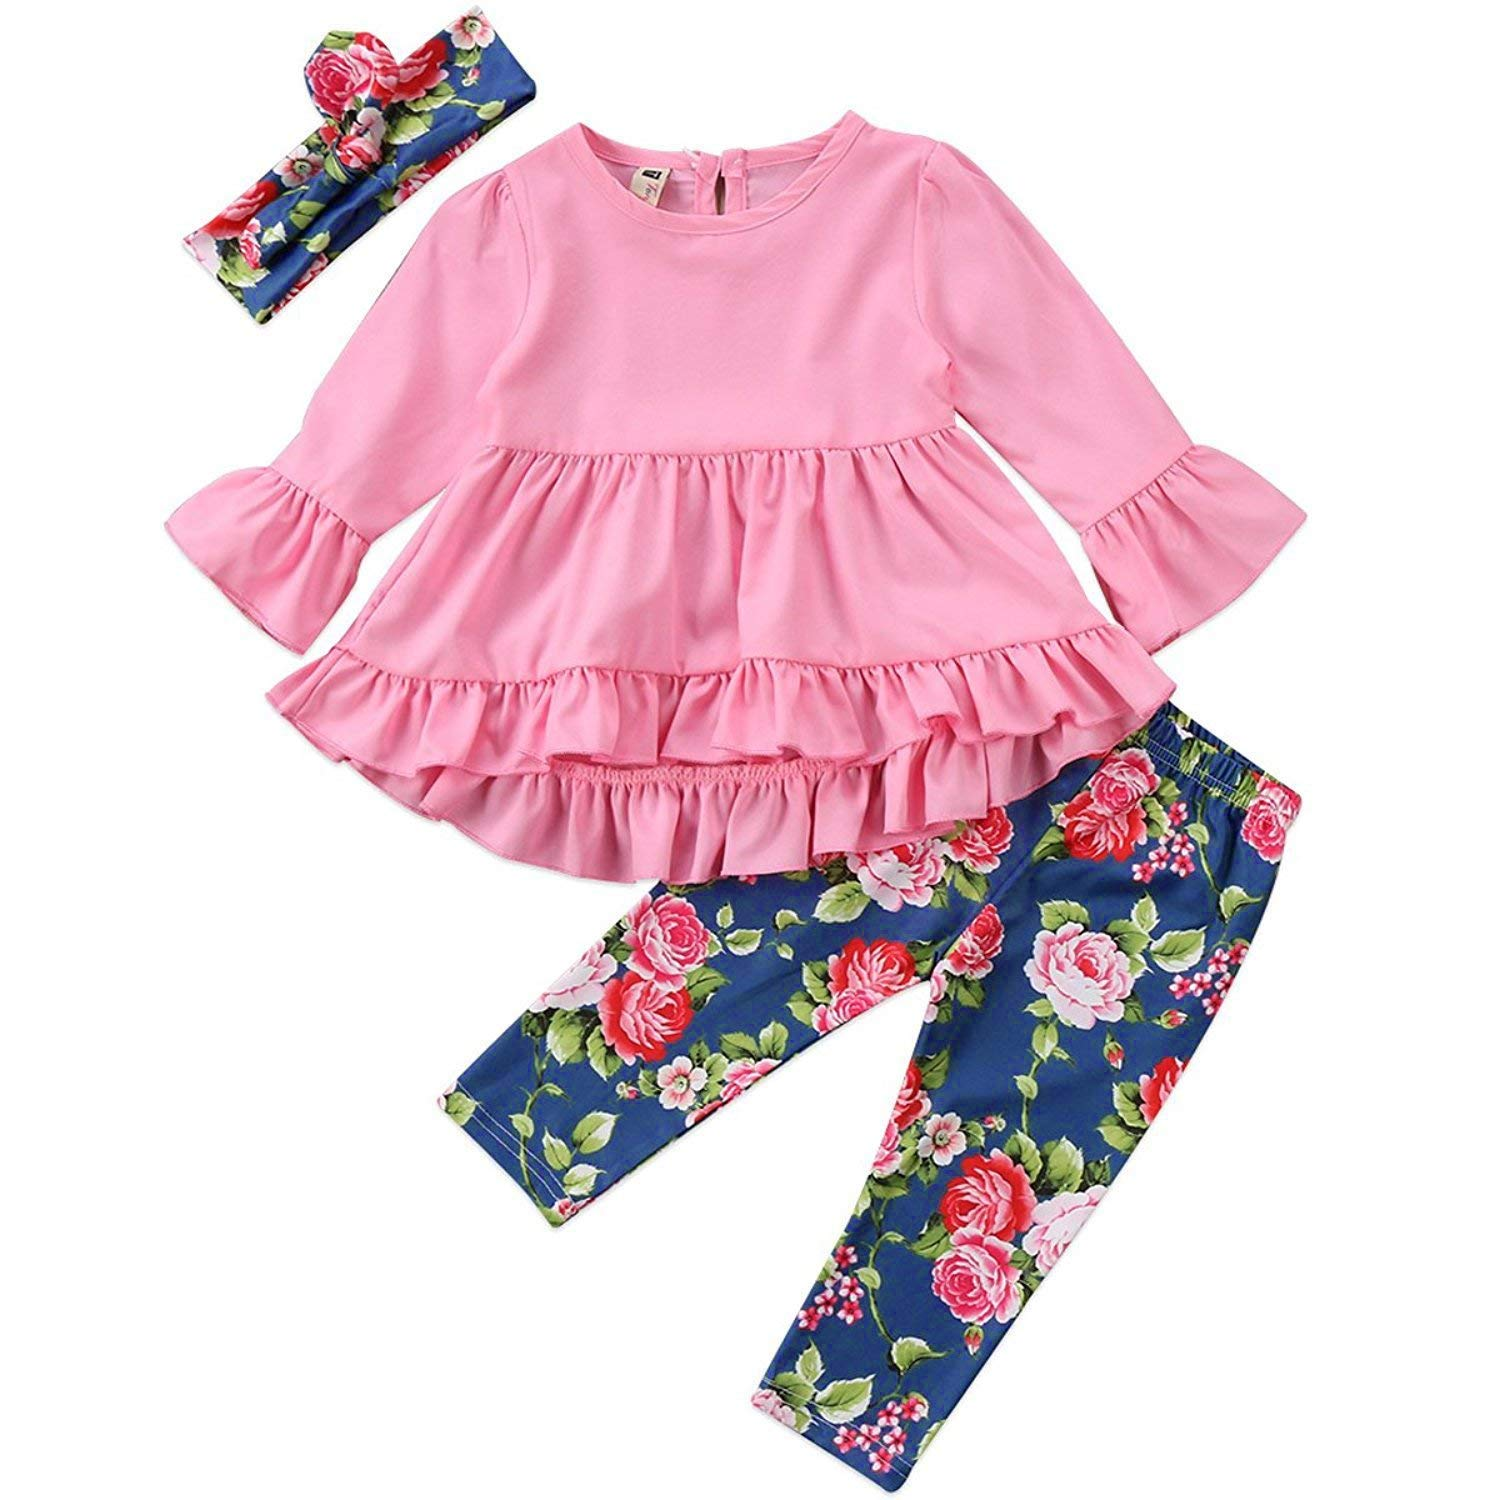 2Pcs Outfits Little Girl Pink Long Sleeve Ruffle Dress T-Shirt Floral Pants Headband/Scarf Sets